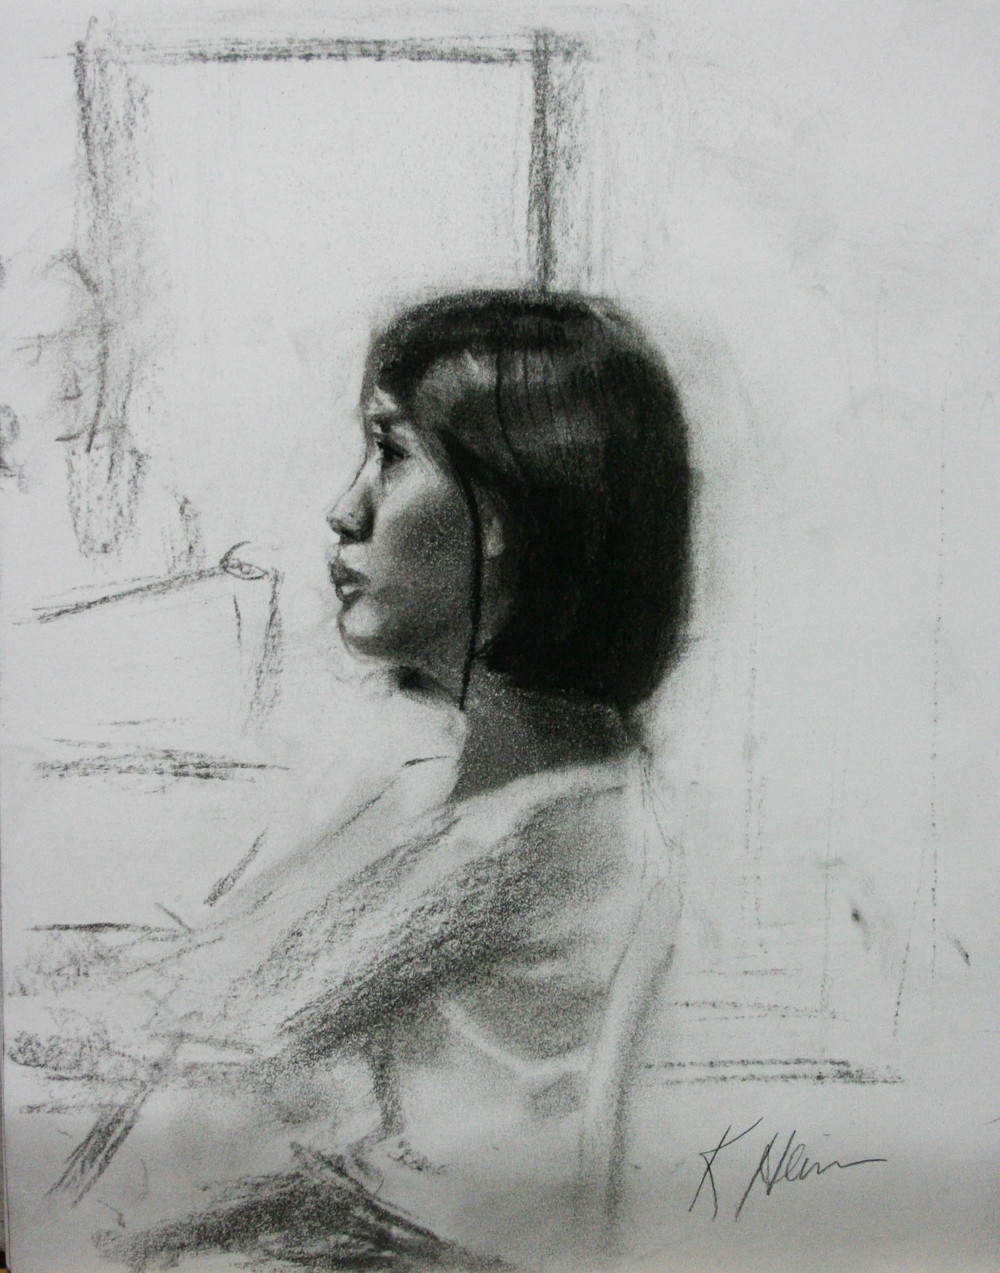 Kathryn Heim did this half hour sketch.